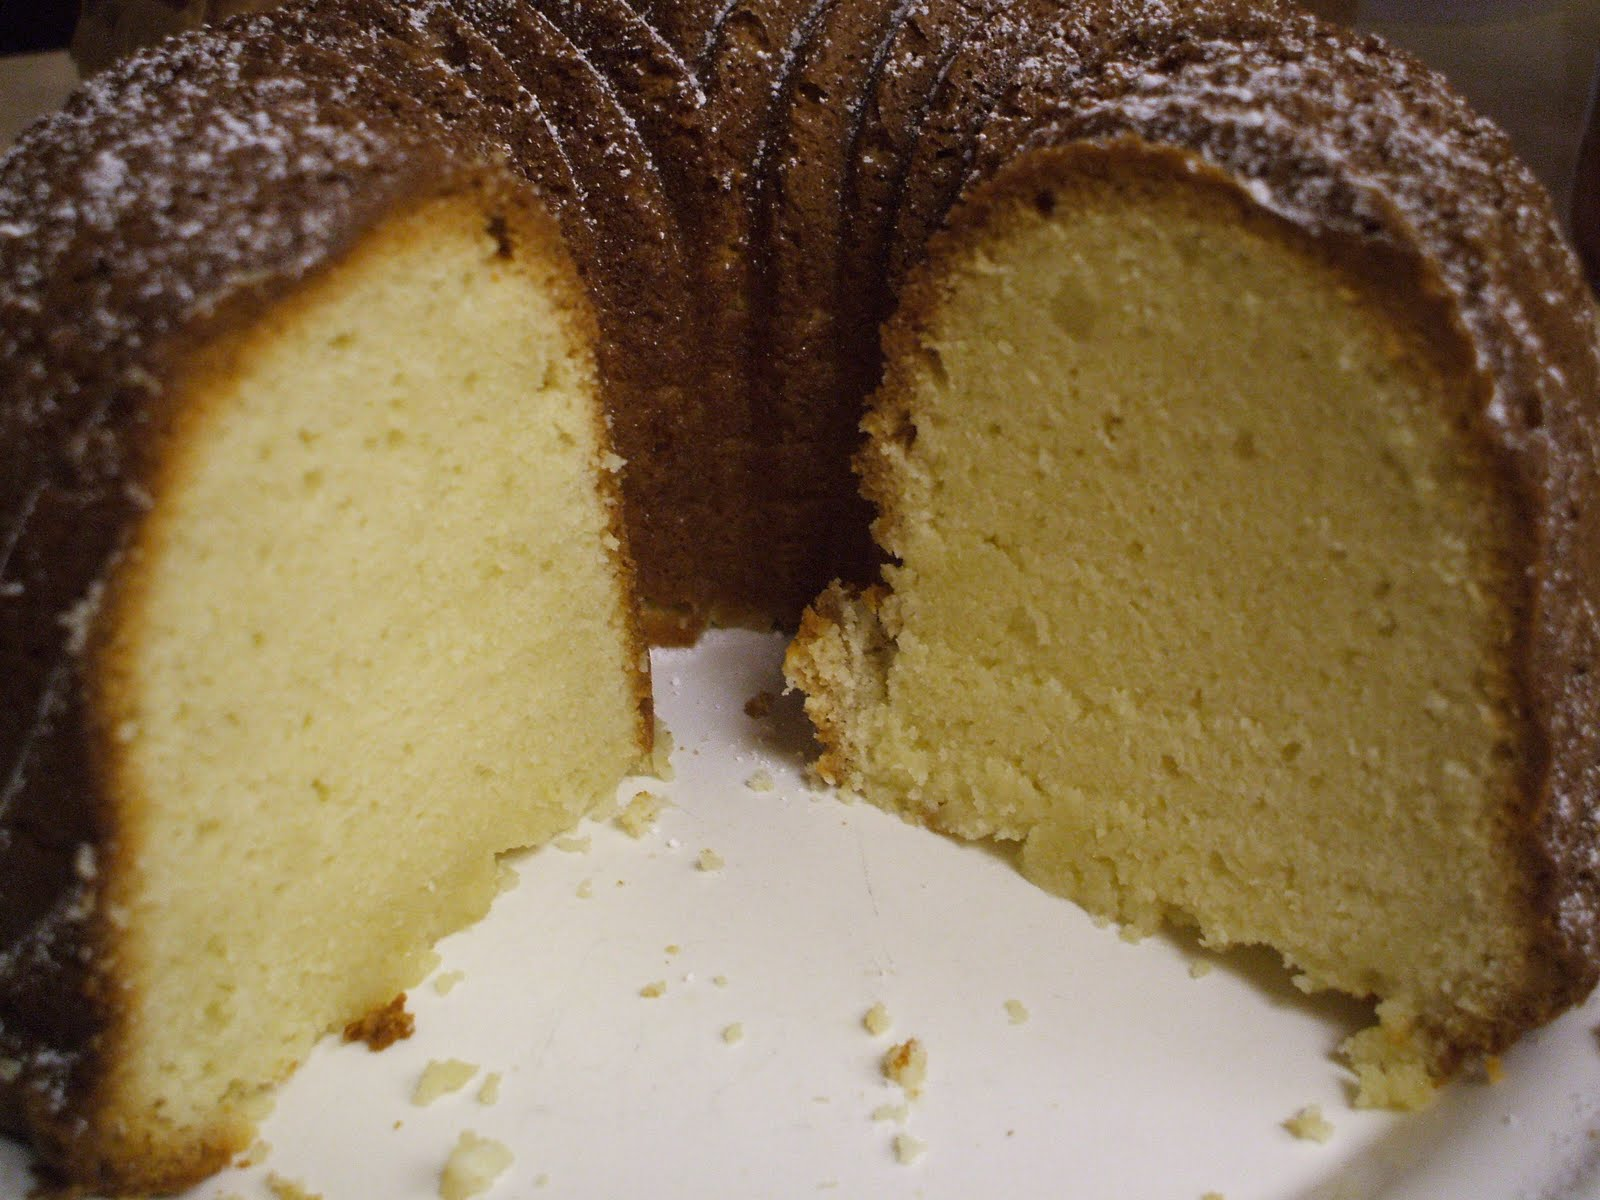 Frugal Antics of a Harried Homemaker: Cream Cheese Pound Cake